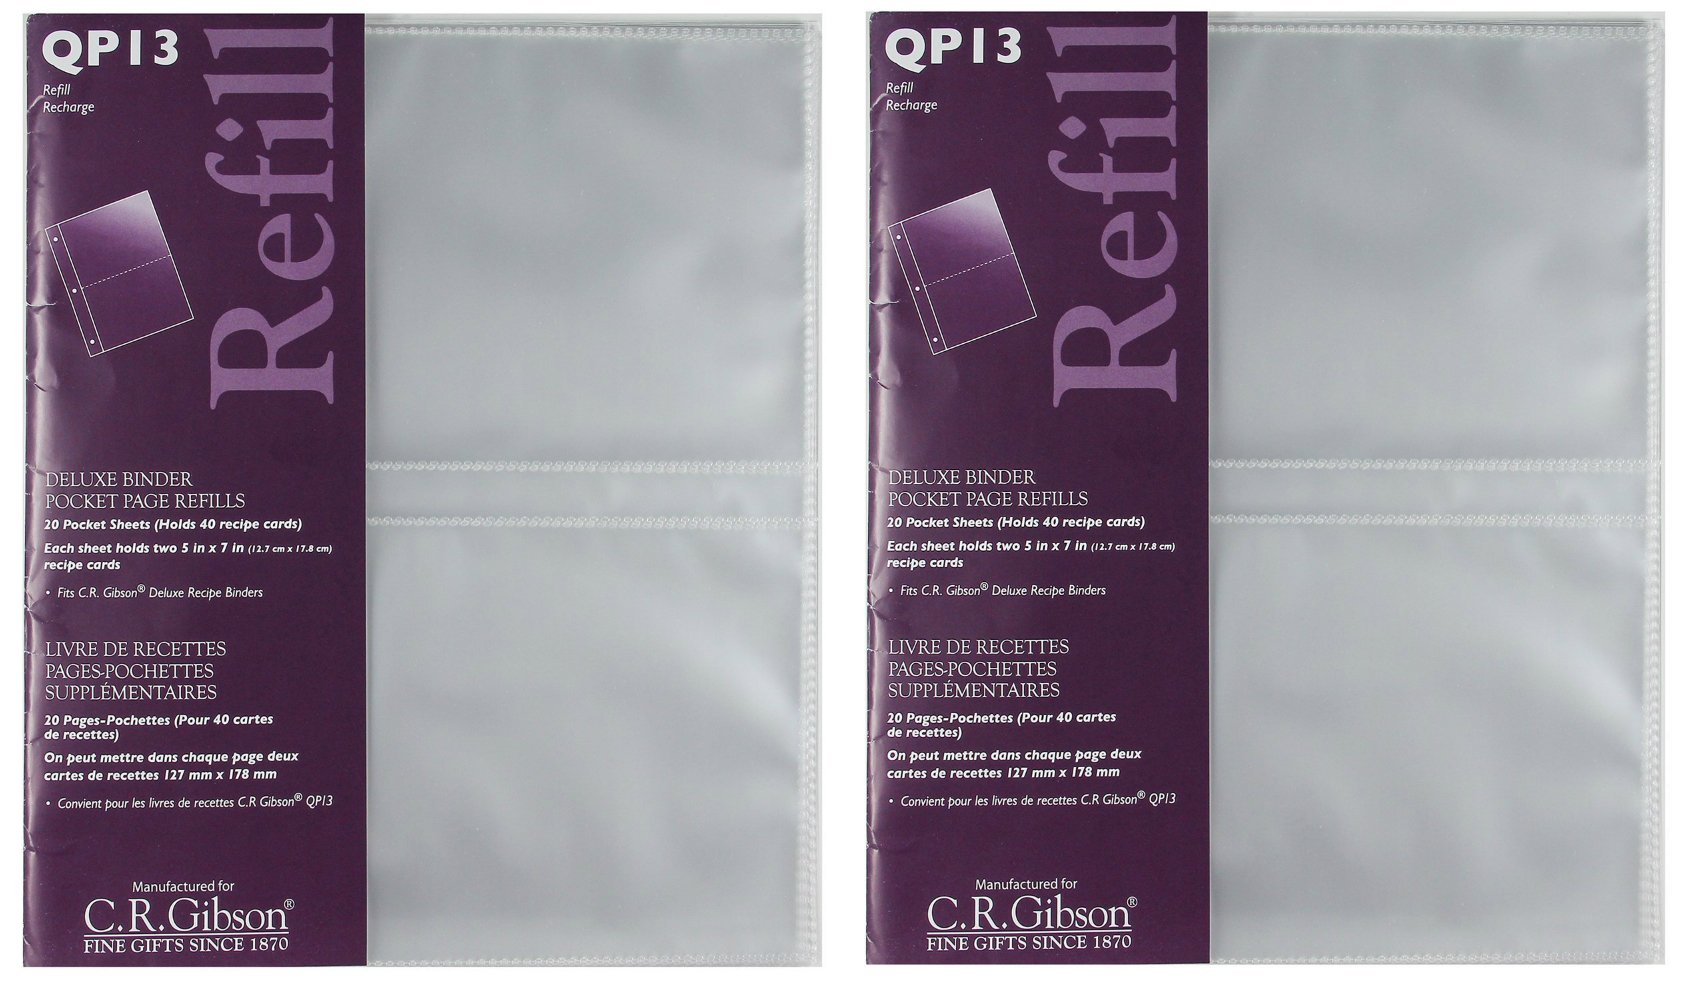 CR Gibson QP-13 Deluxe Binder pocket page refills, 20 pocket sheet (holds 40 recipe cards)(2 pack)